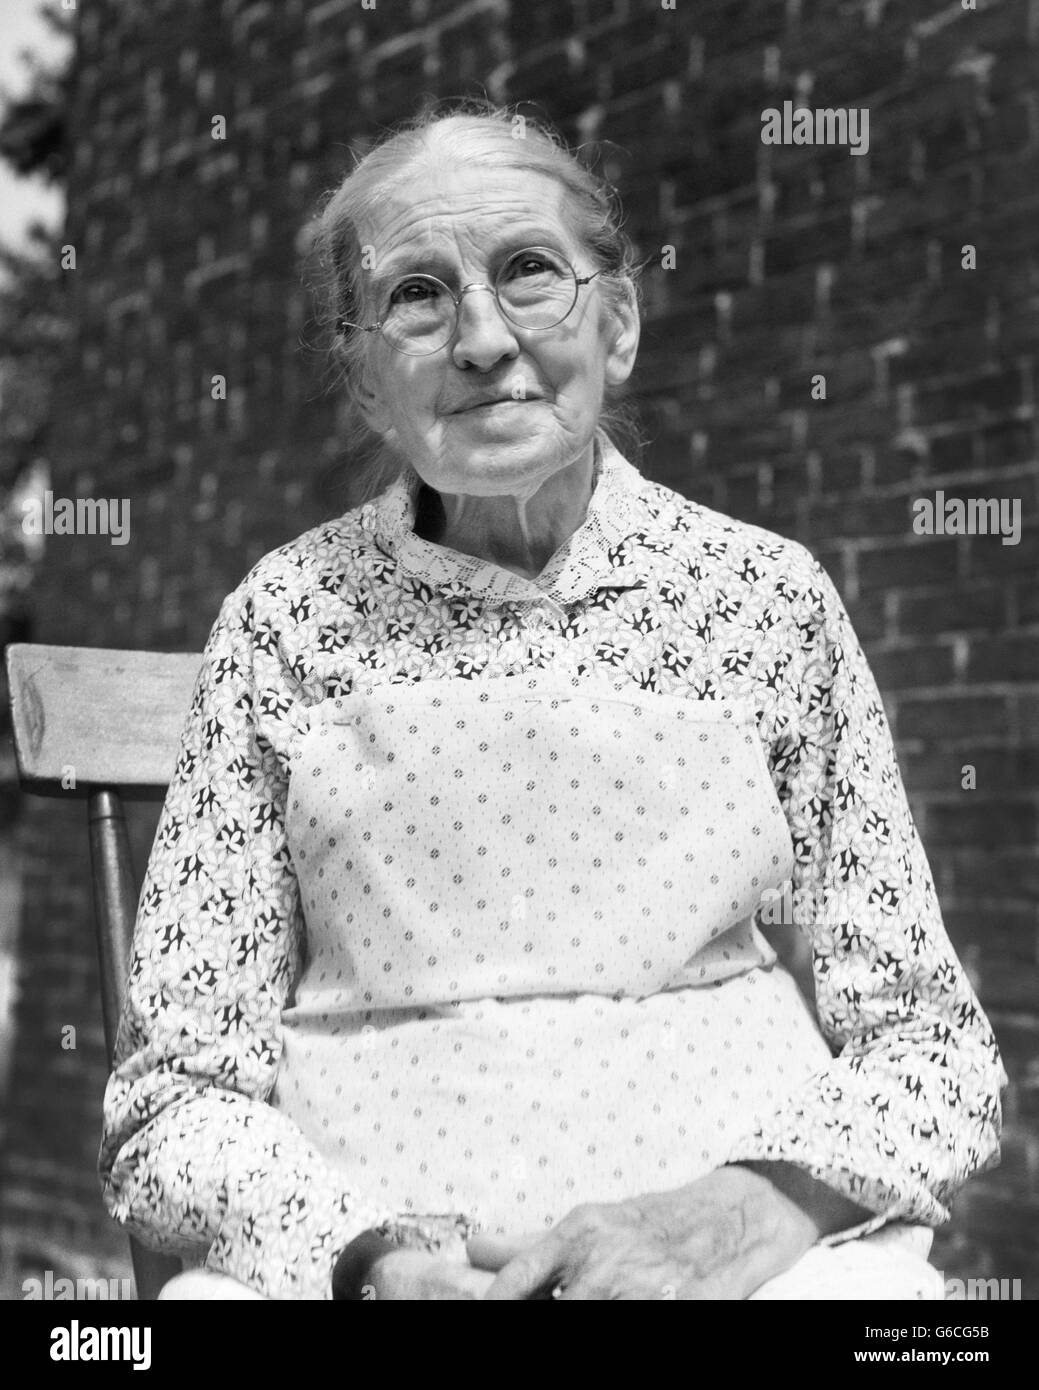 1930s PORTRAIT ELDERLY WOMAN WEARING EYEGLASSES PRINT DRESS WHITE BIB APRON - Stock Image